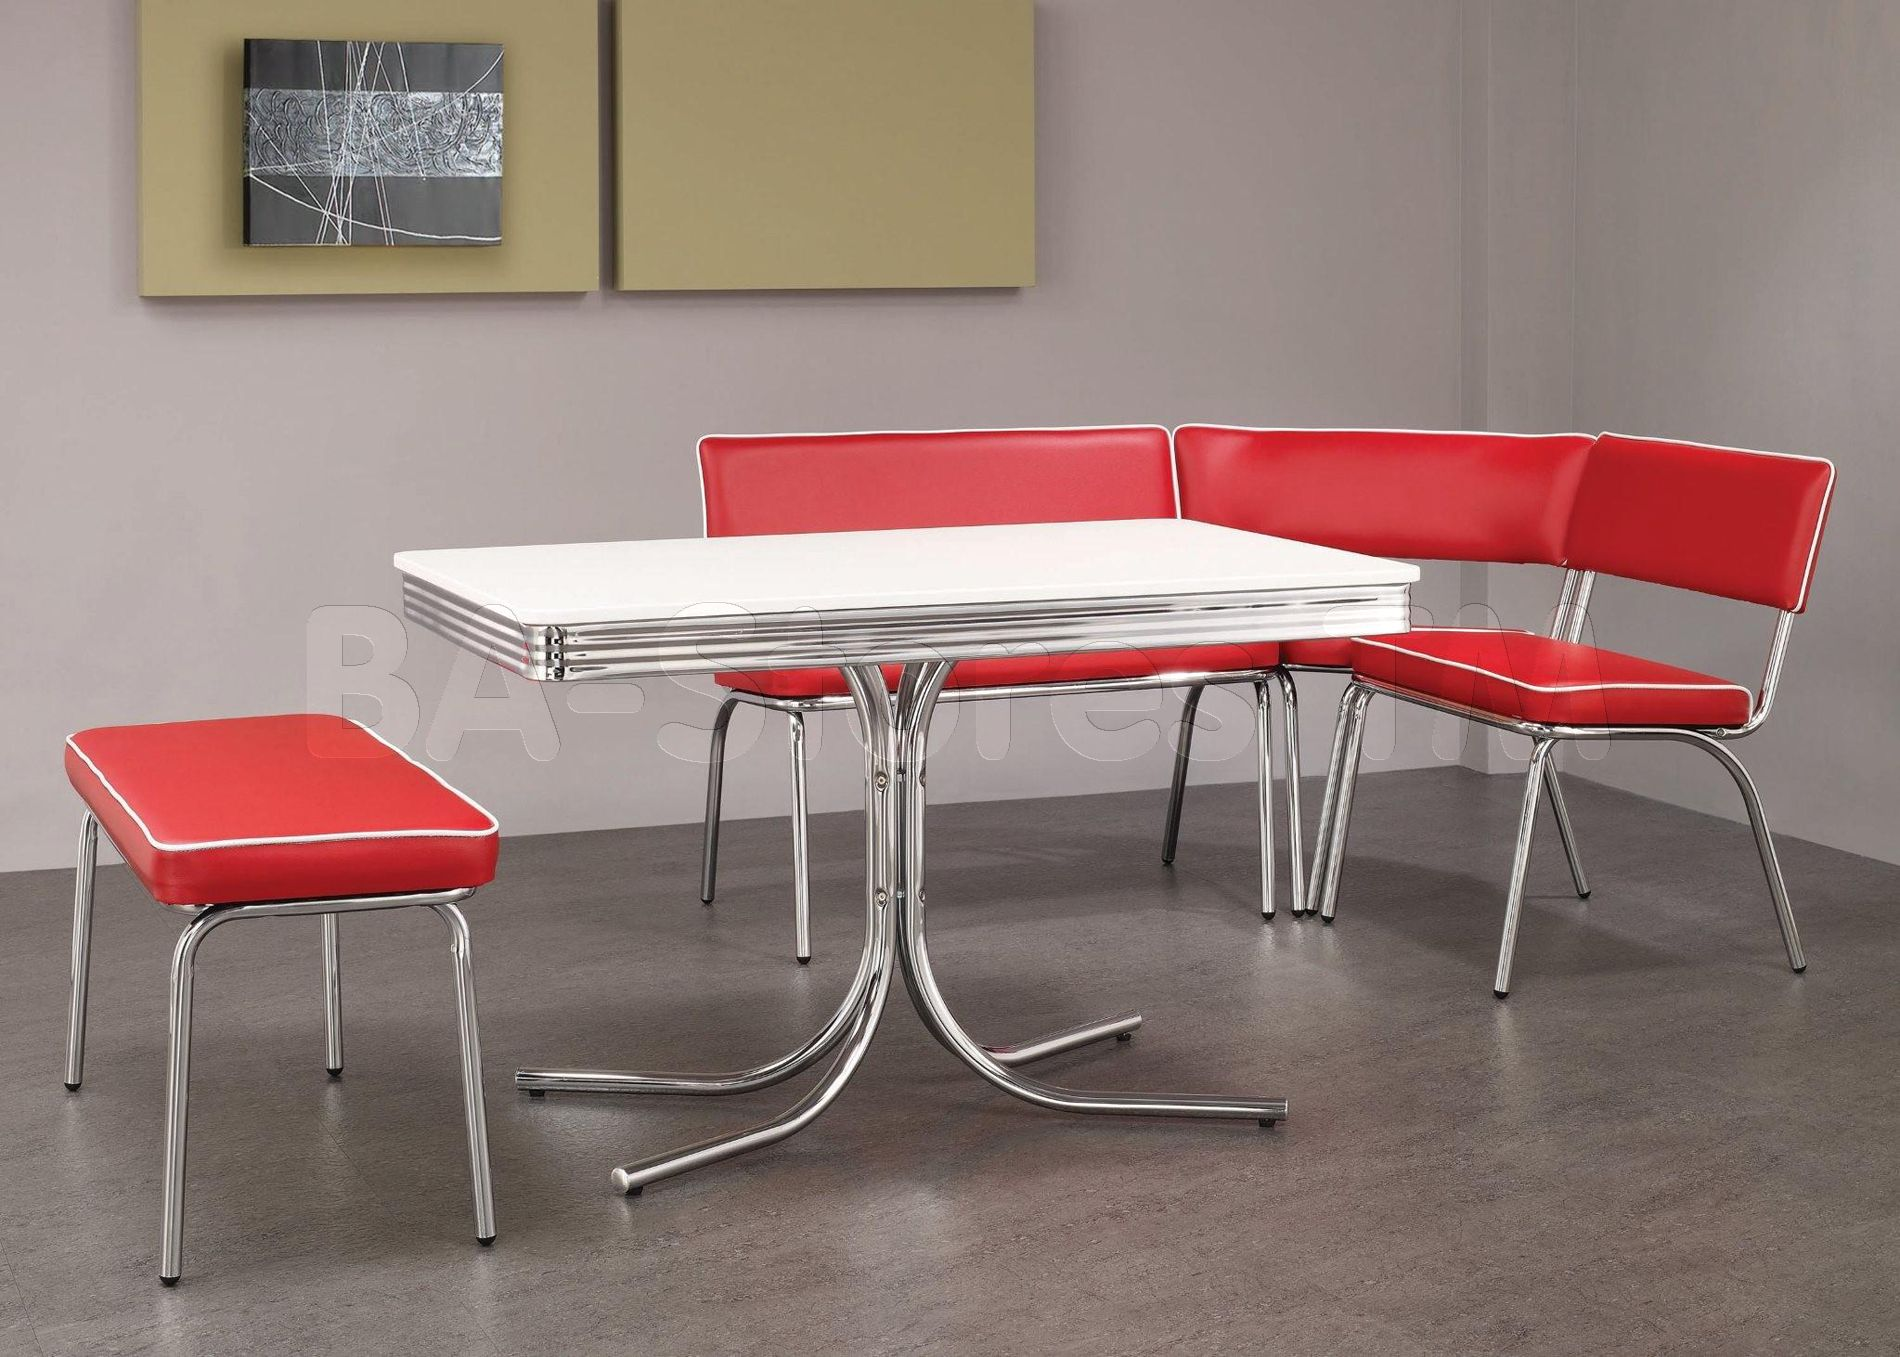 Exceptionnel Retro Chrome Dining Set In Red (Table, Corner Bench And Bench)